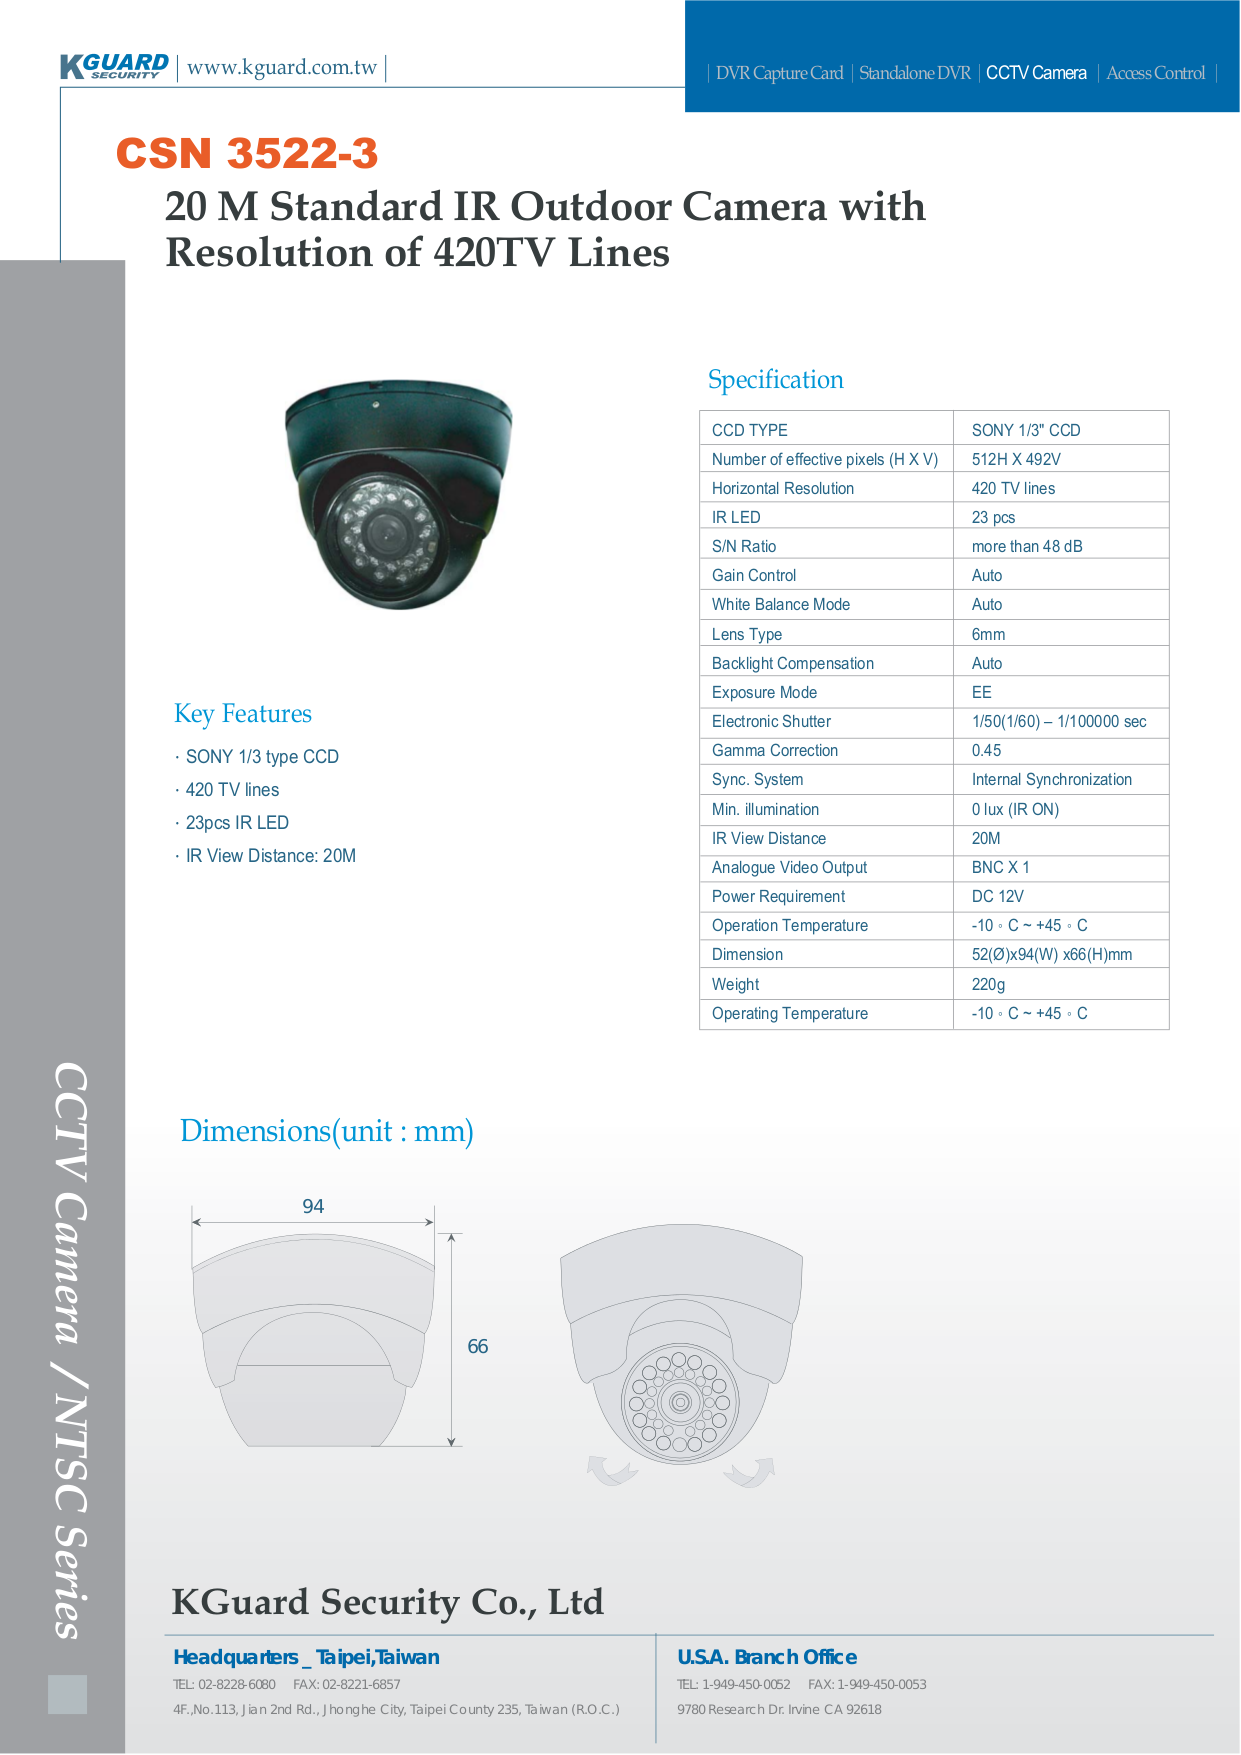 pdf for Kguard Security Camera CSN-3522-3 manual